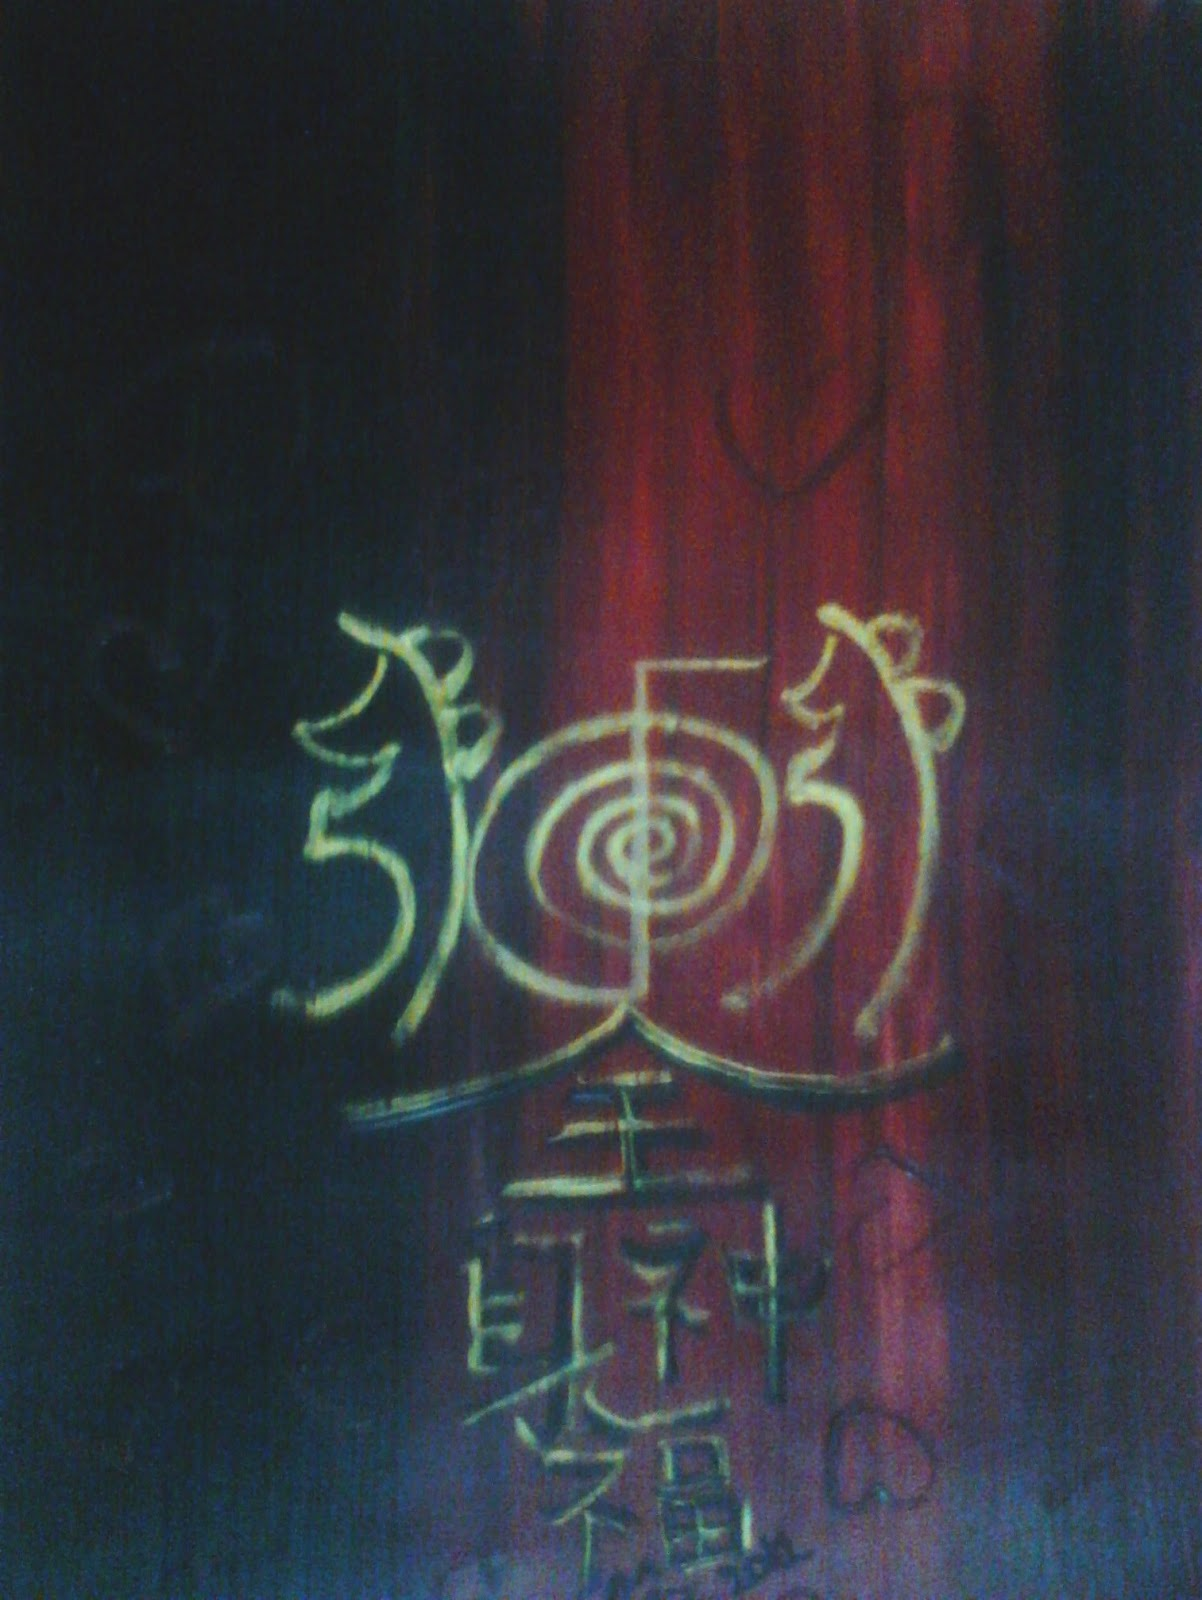 Razarts reiki symbol se he ki meaning and feng shui energy reiki symbol se he ki meaning and feng shui energy biocorpaavc Images